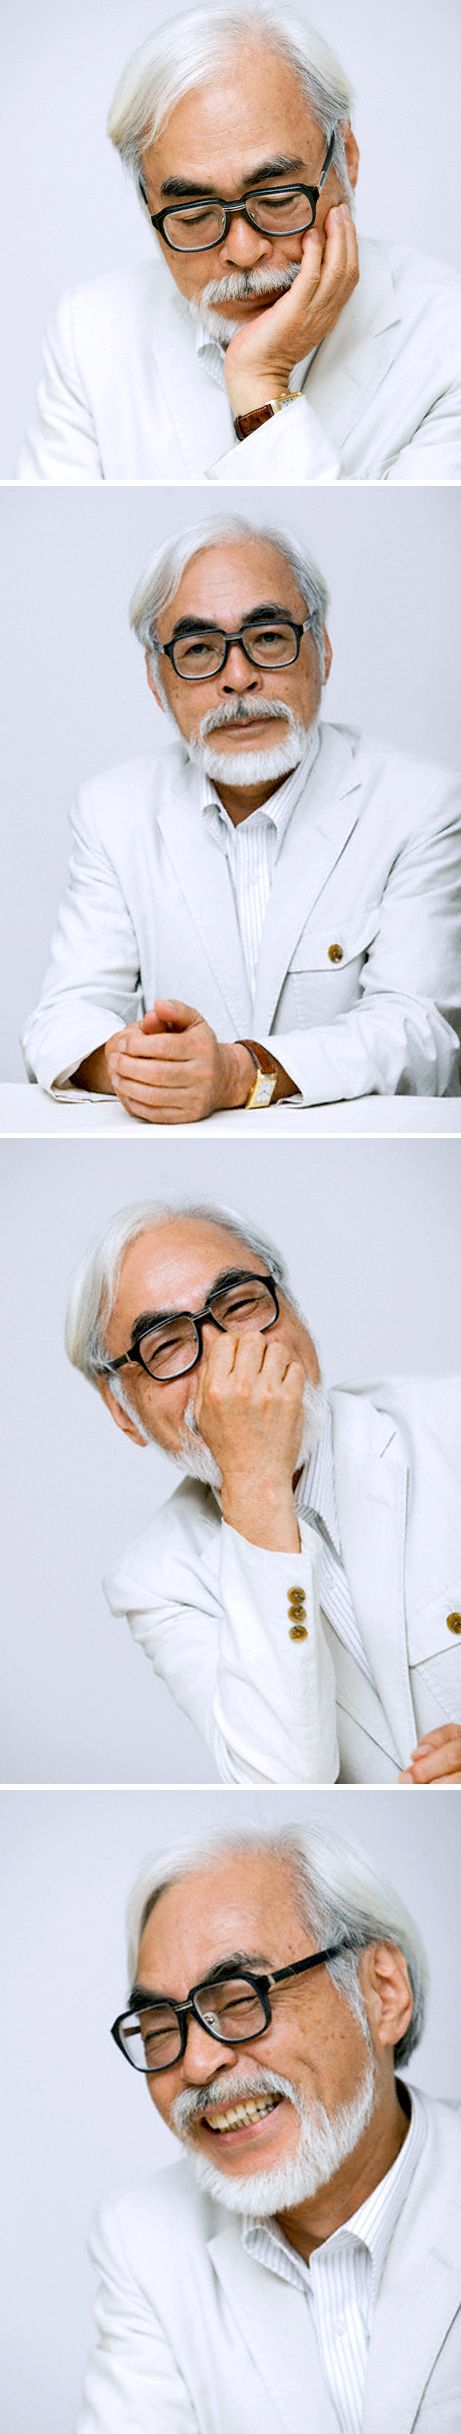 Hayao Miyazaki Japanese film director, producer, screenwriter, animator, author, and manga artist.